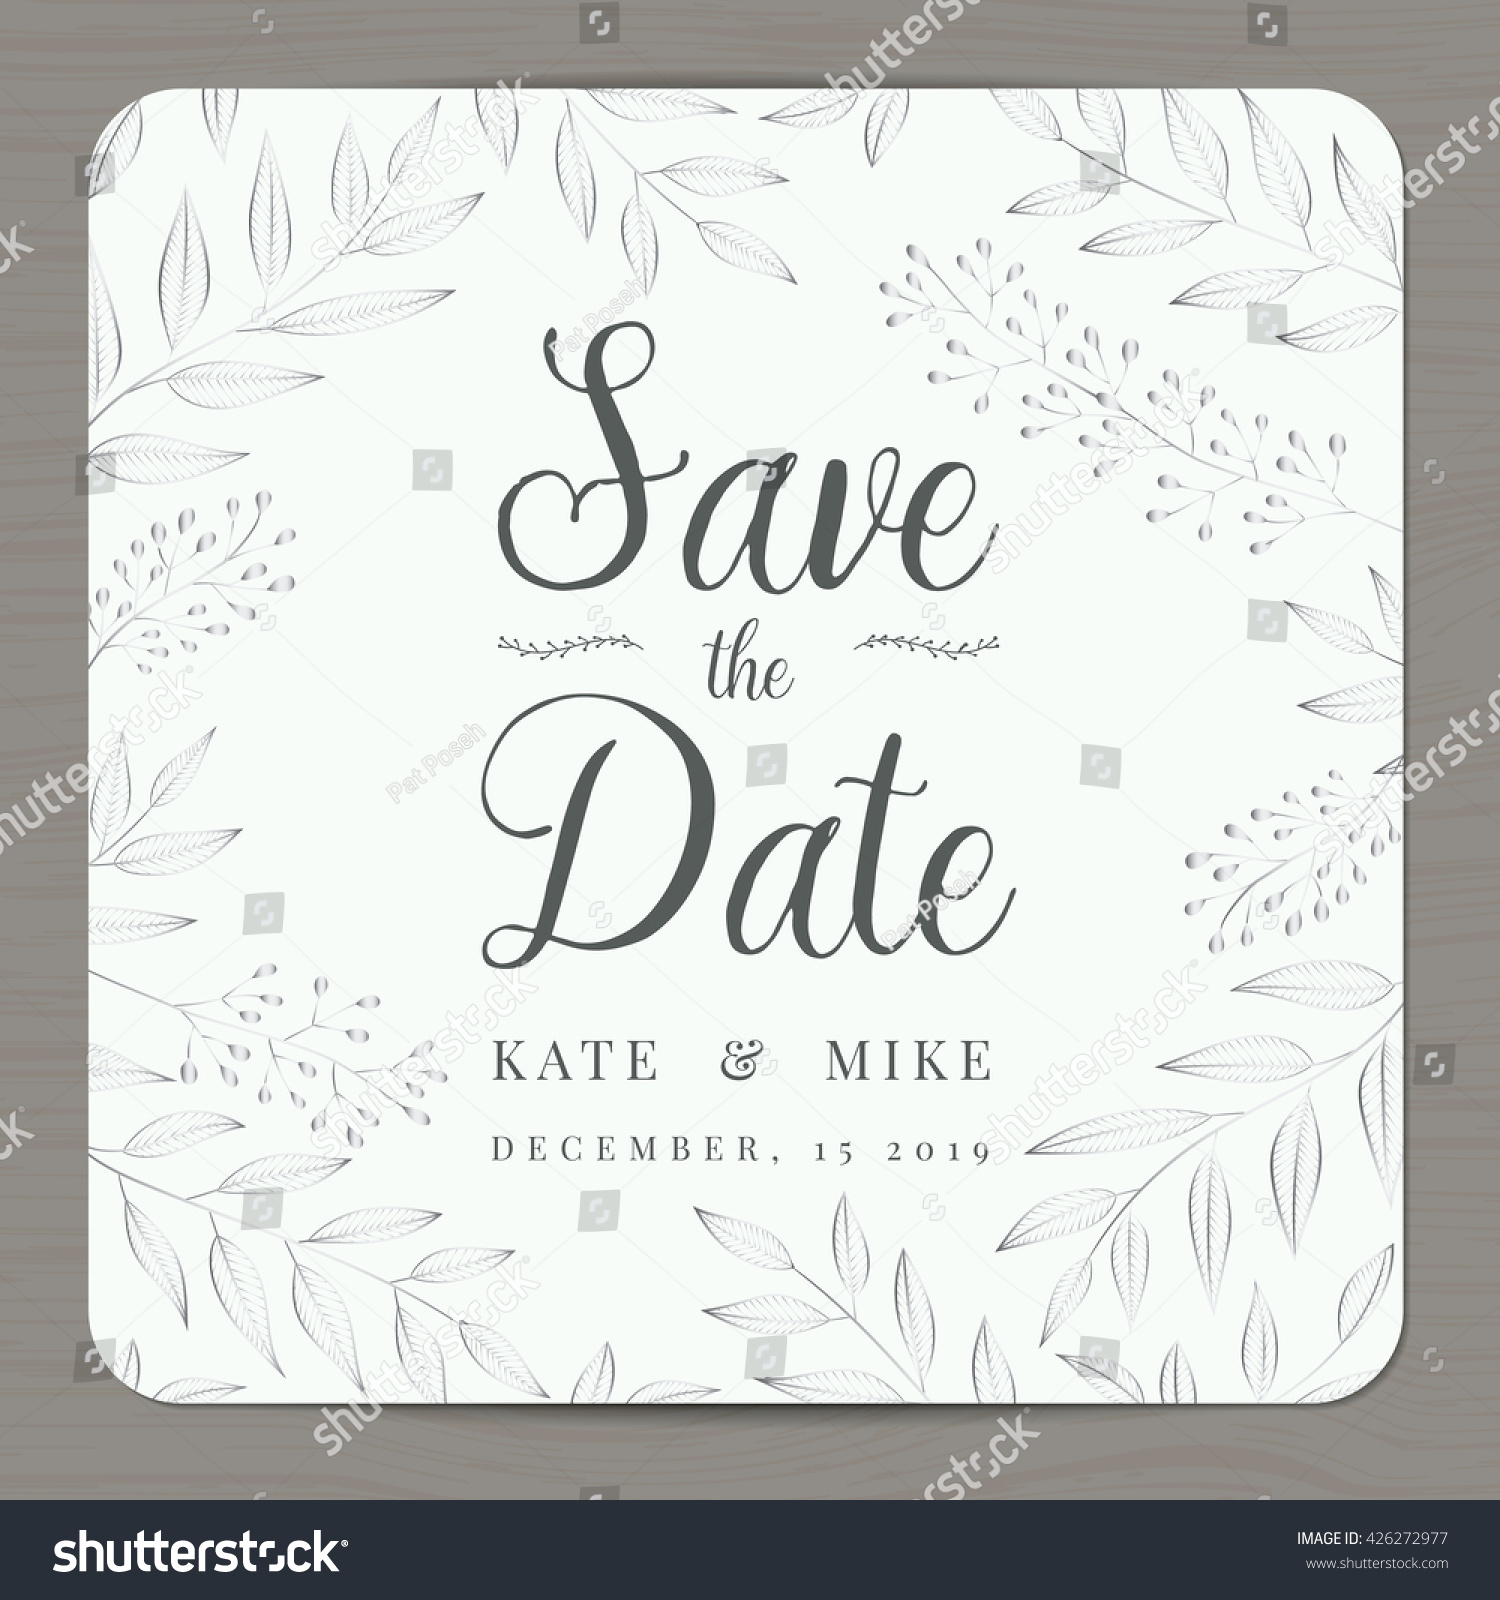 Save Date Wedding Invitation Card Template Stock Vector HD (Royalty ...